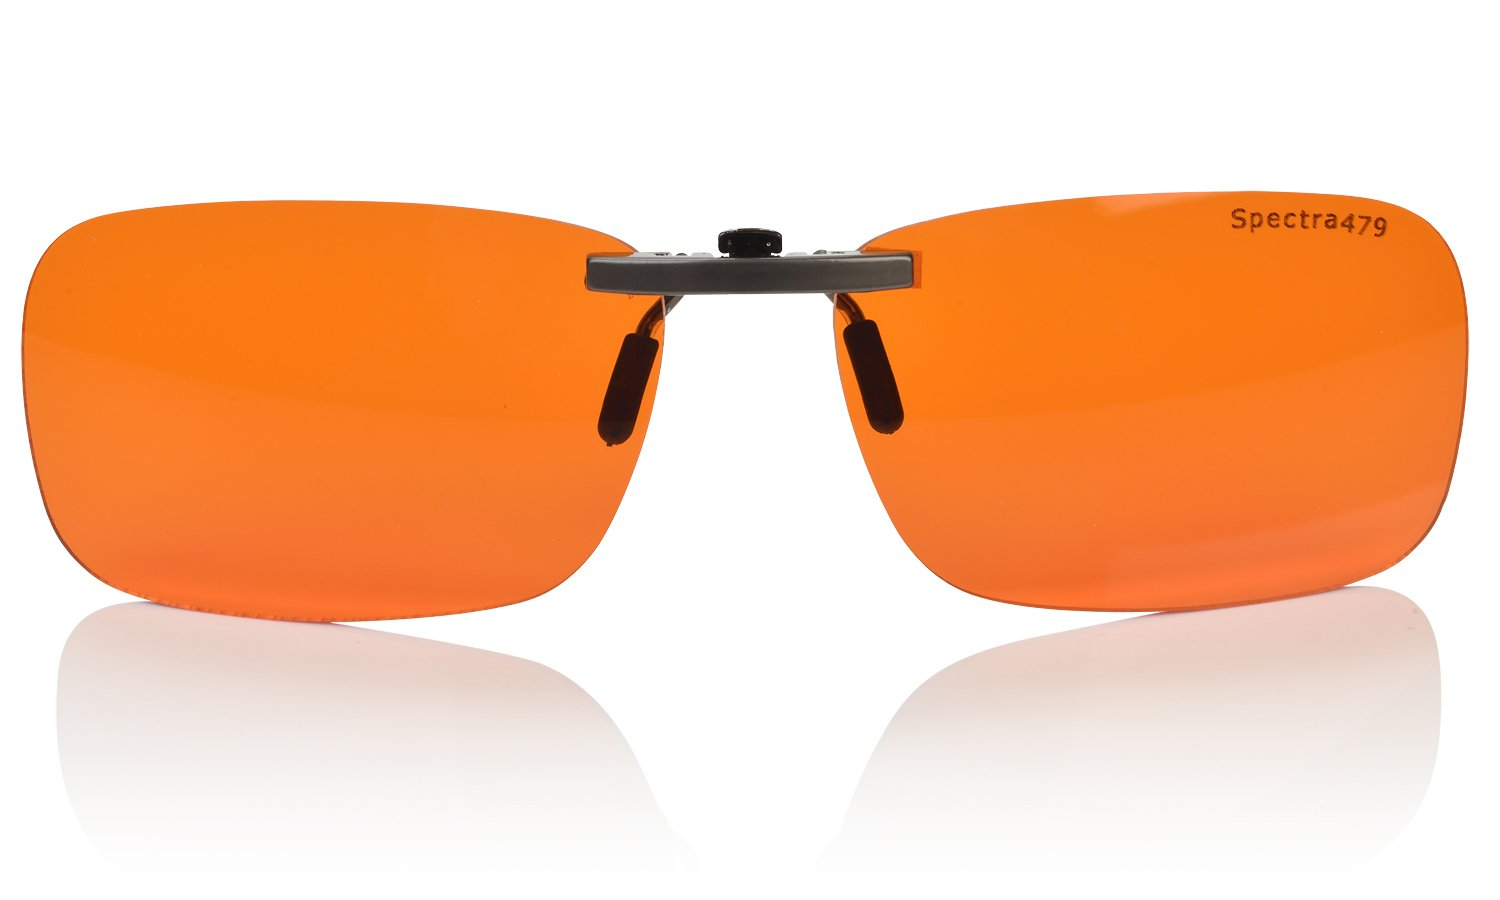 Clip-on Blue Blocking Amber Lenses for Sleep - BioRhythm Safe(TM) - Nighttime Eye Wear - Special Orange Tinted Lenses Help You Sleep and Relax Your Eyes (Nighttime Lens) by Spectra479